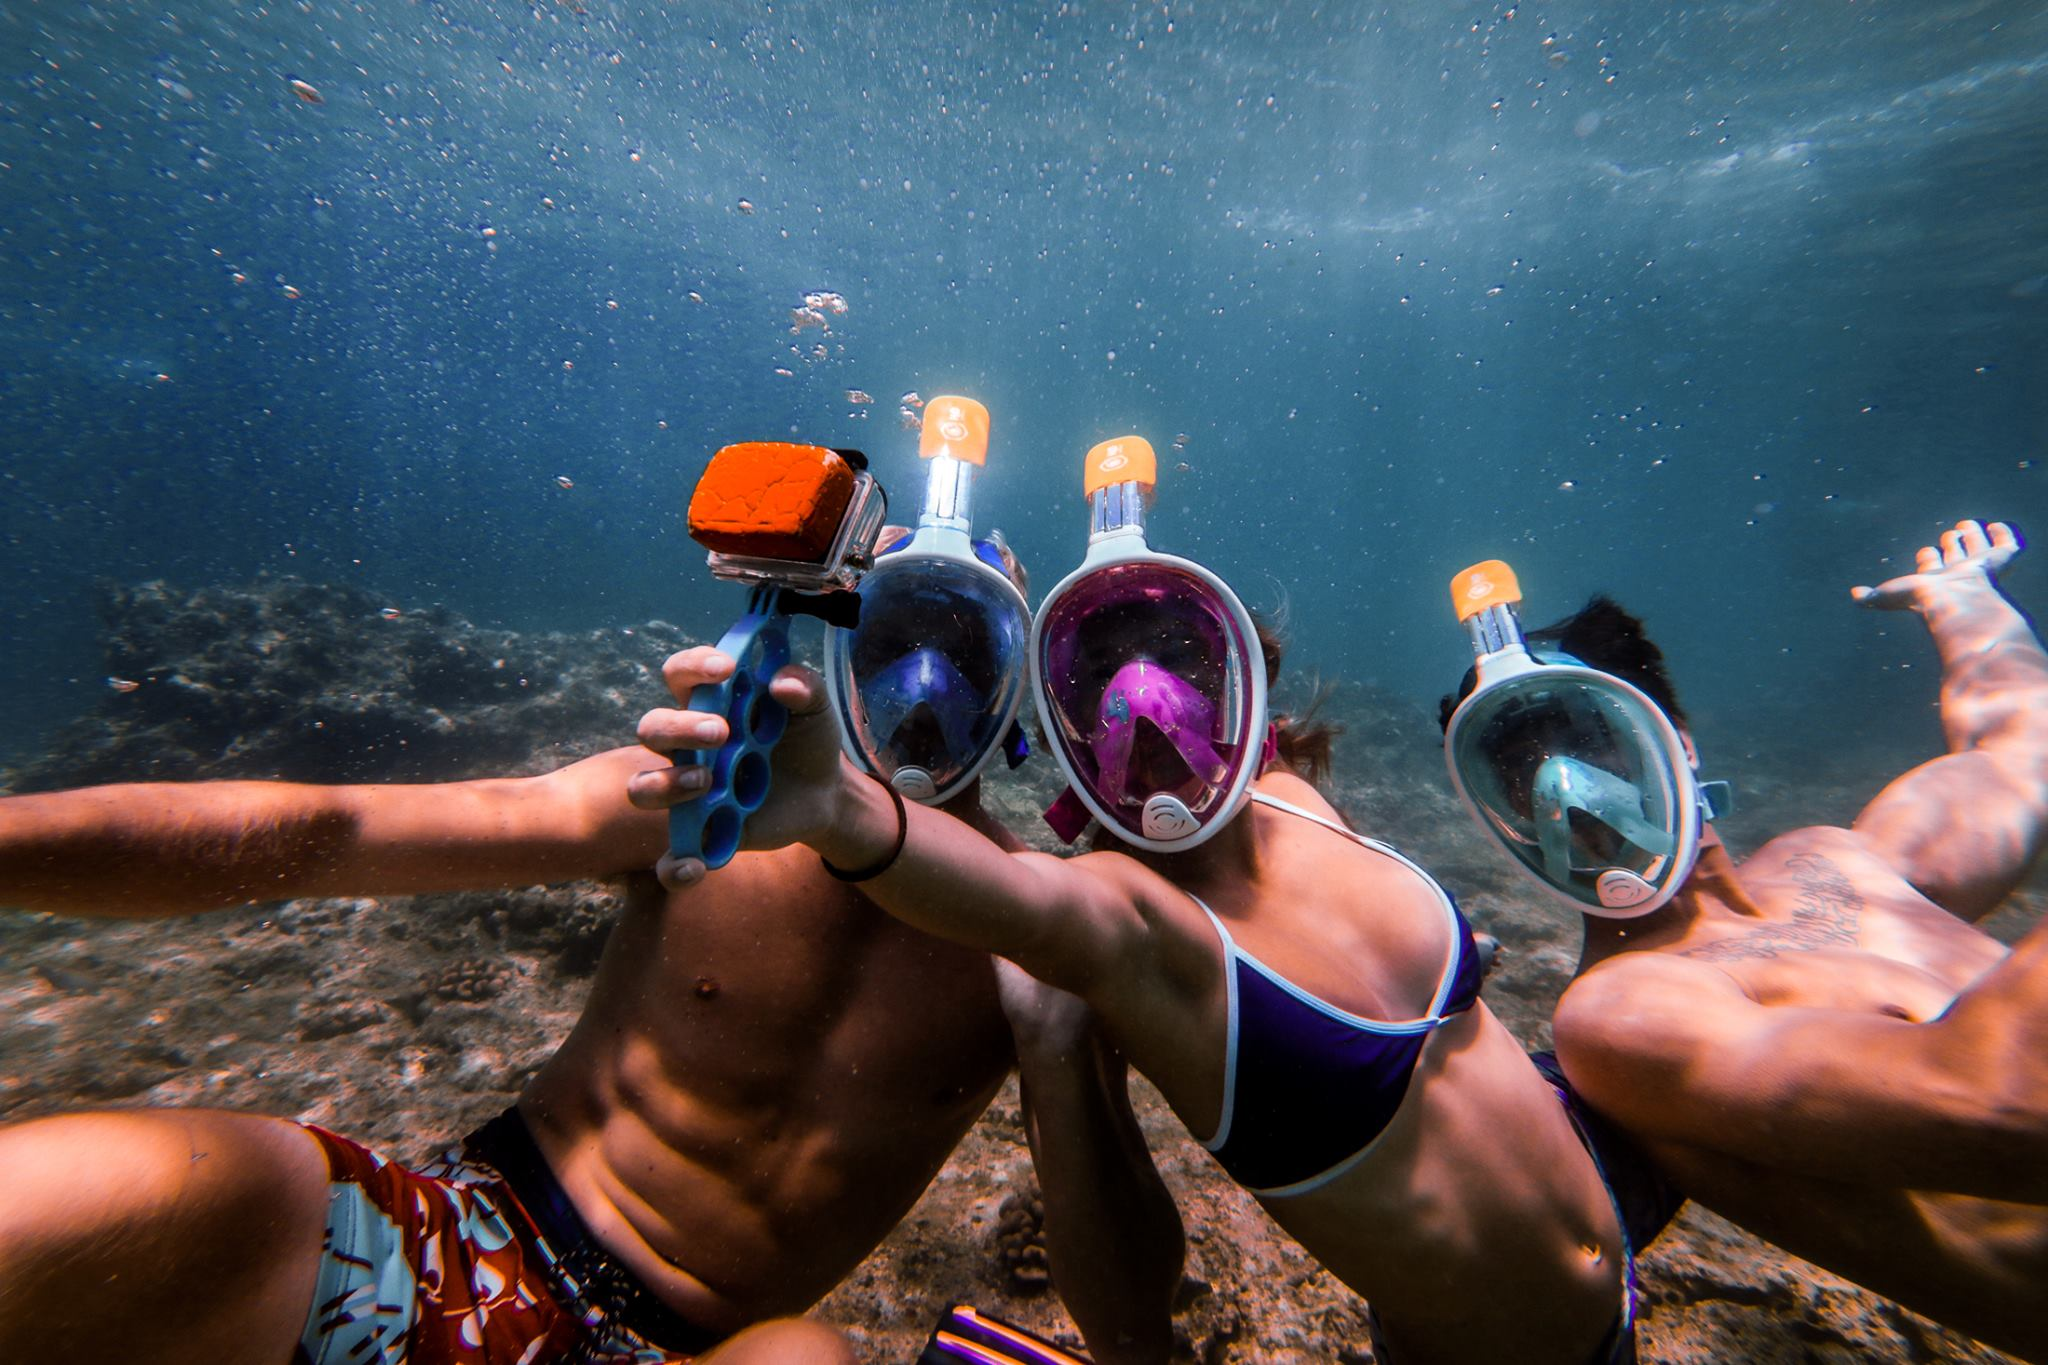 Divers taking a selfie in the H20 Ninja Mask